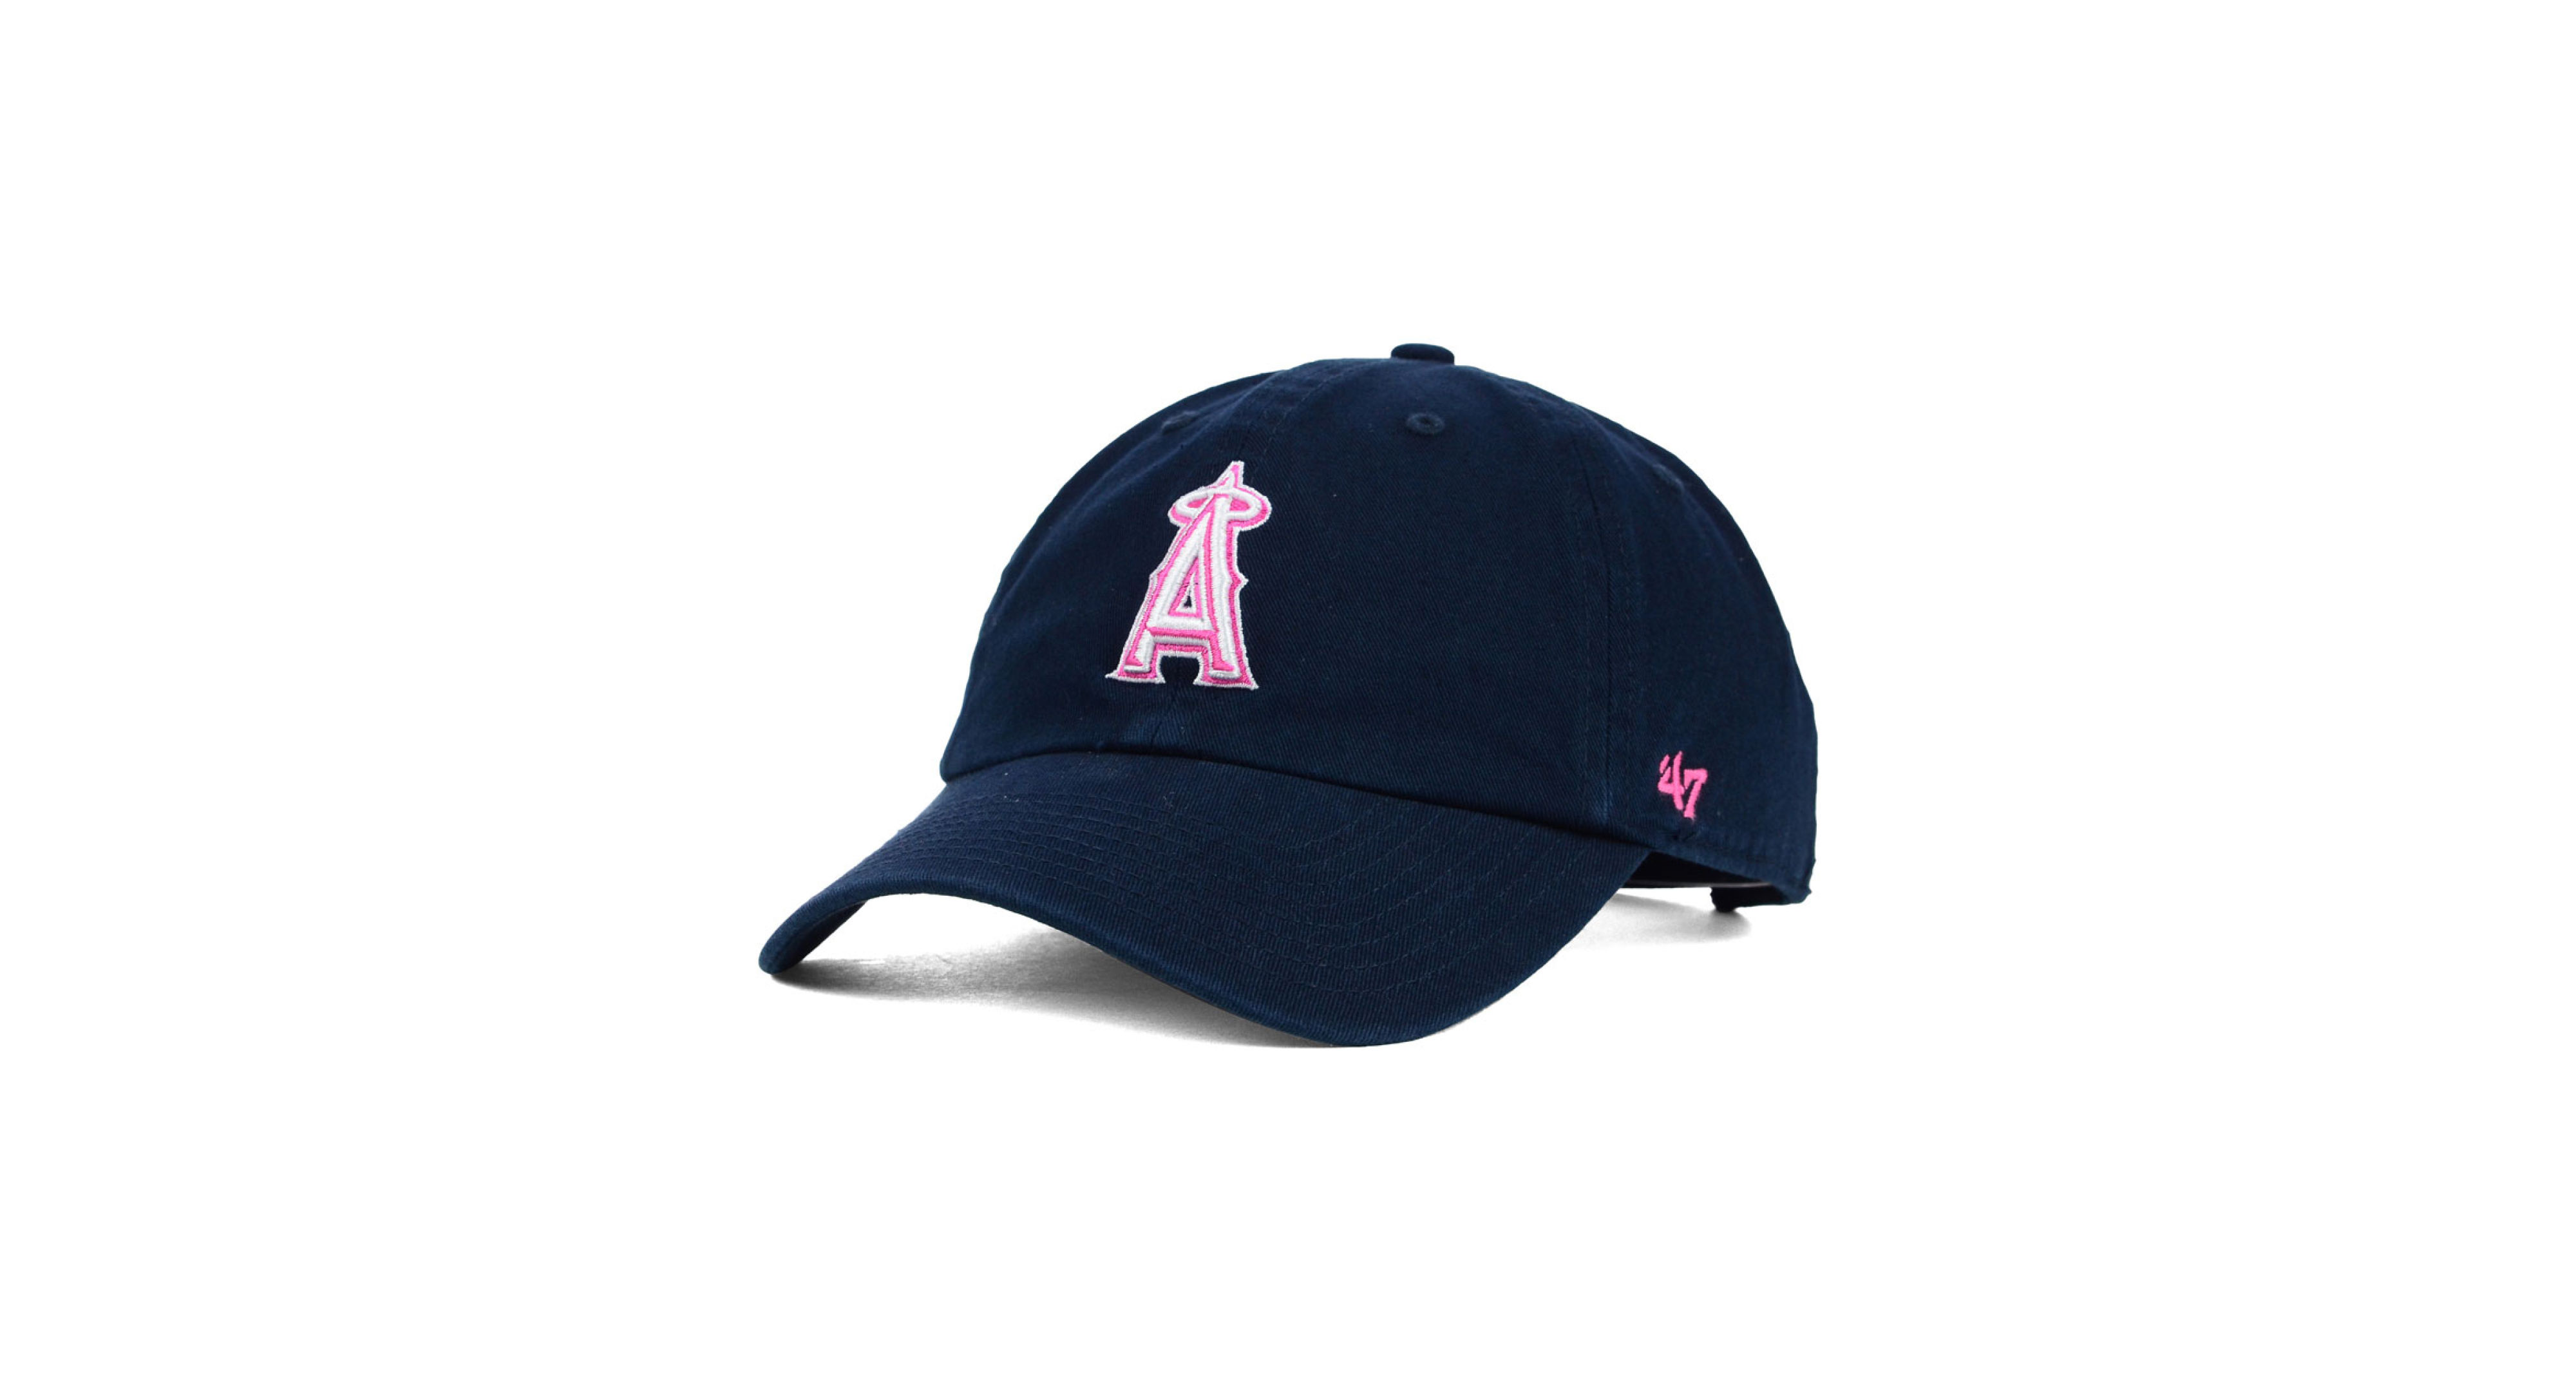 lowest discount retail prices a few days away 47 Brand Women's Los Angeles Angels of Anaheim Clean Up Cap ...